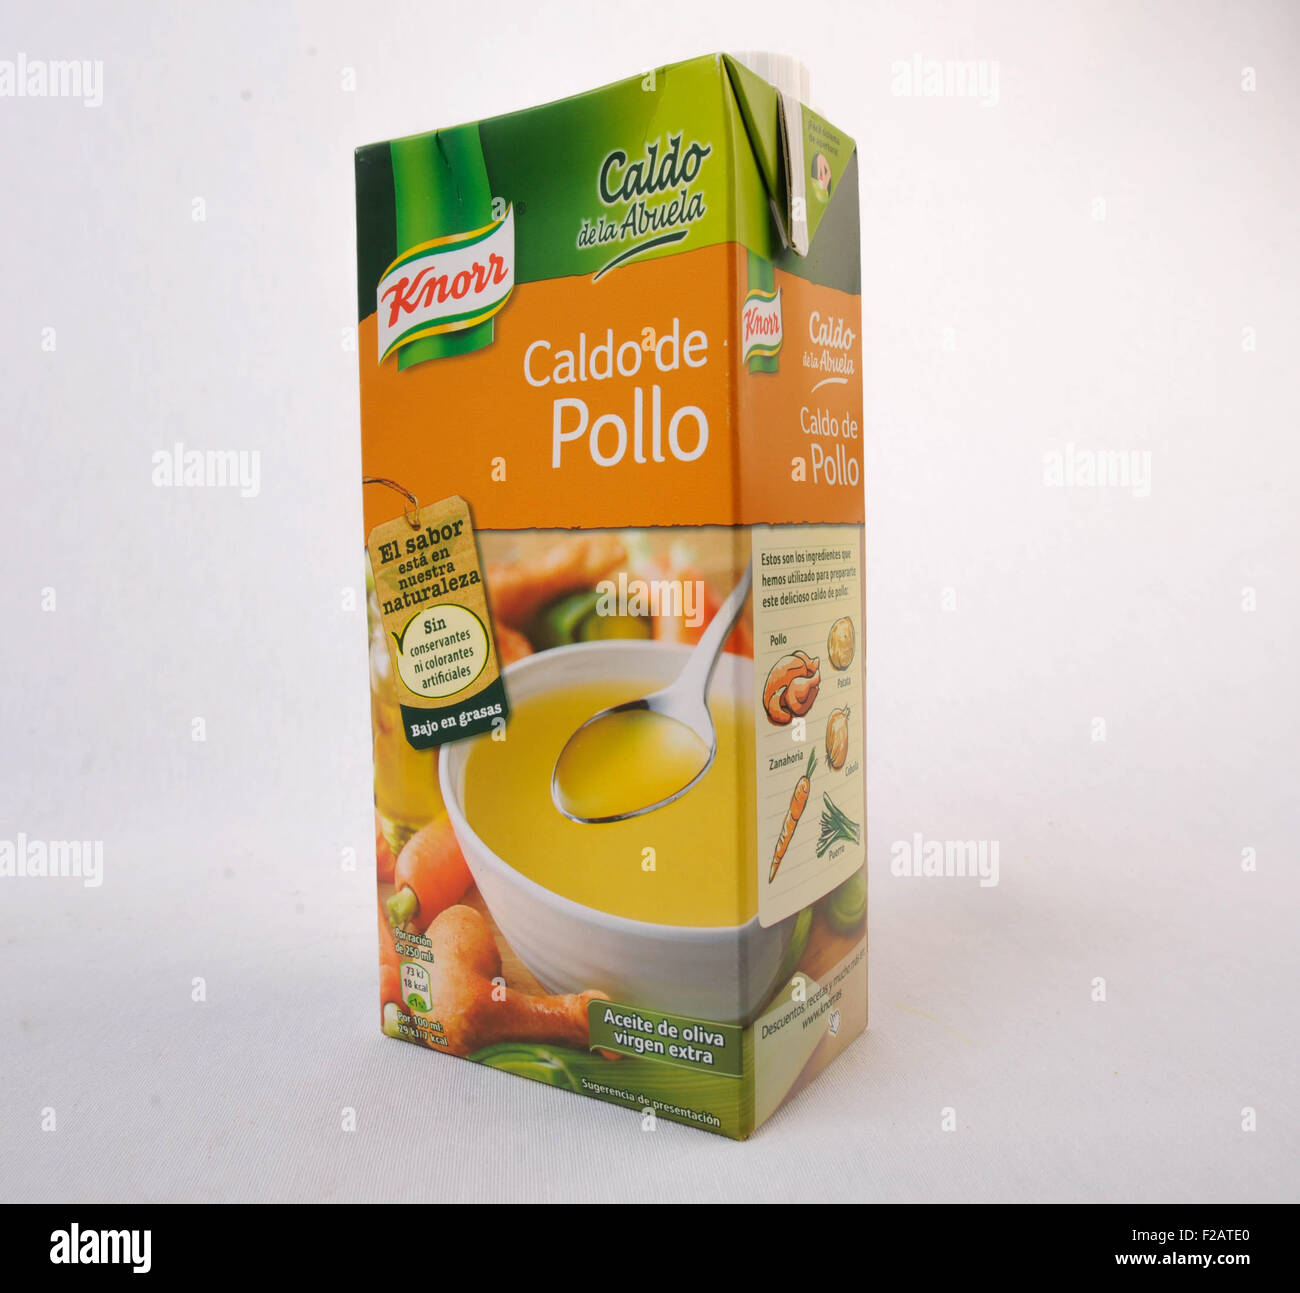 Chicken soup Knorr-Caldo de Pollo Knorr Stock Photo